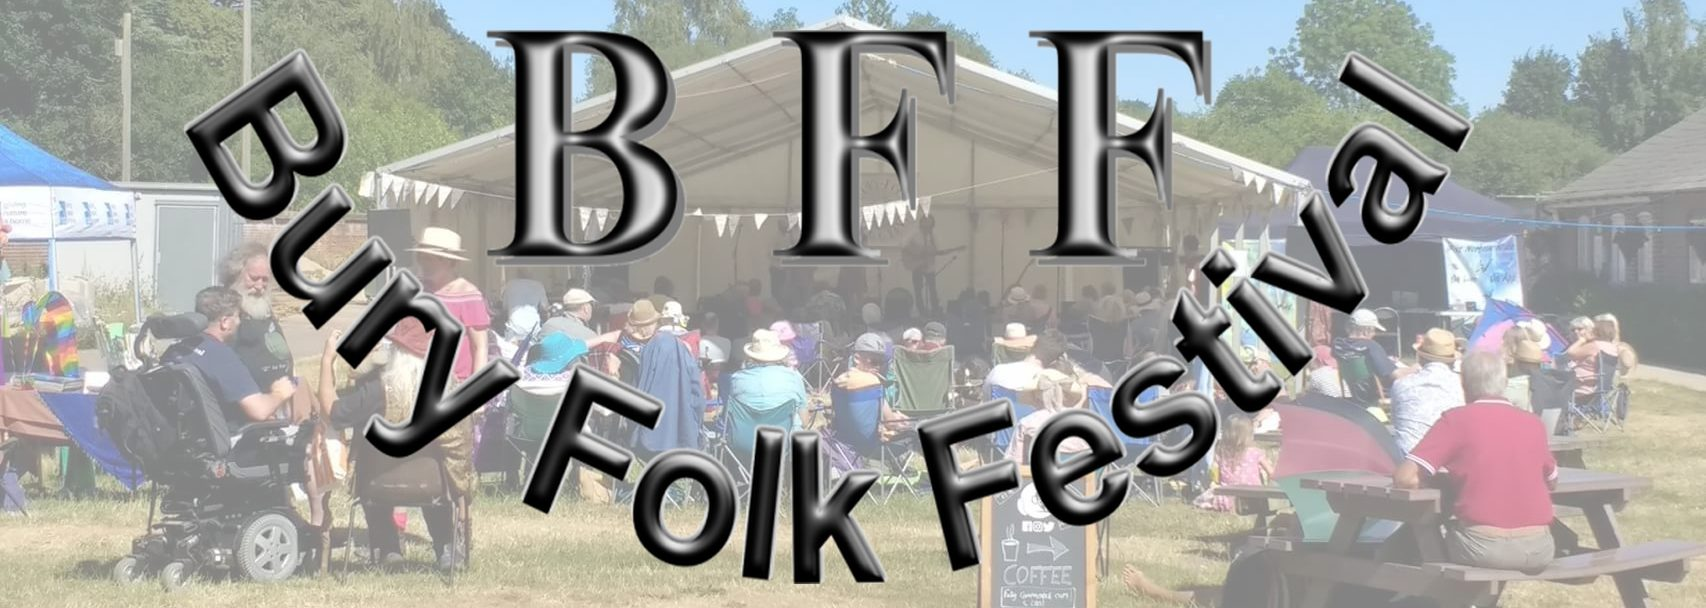 5th Bury Folk Festival 2019